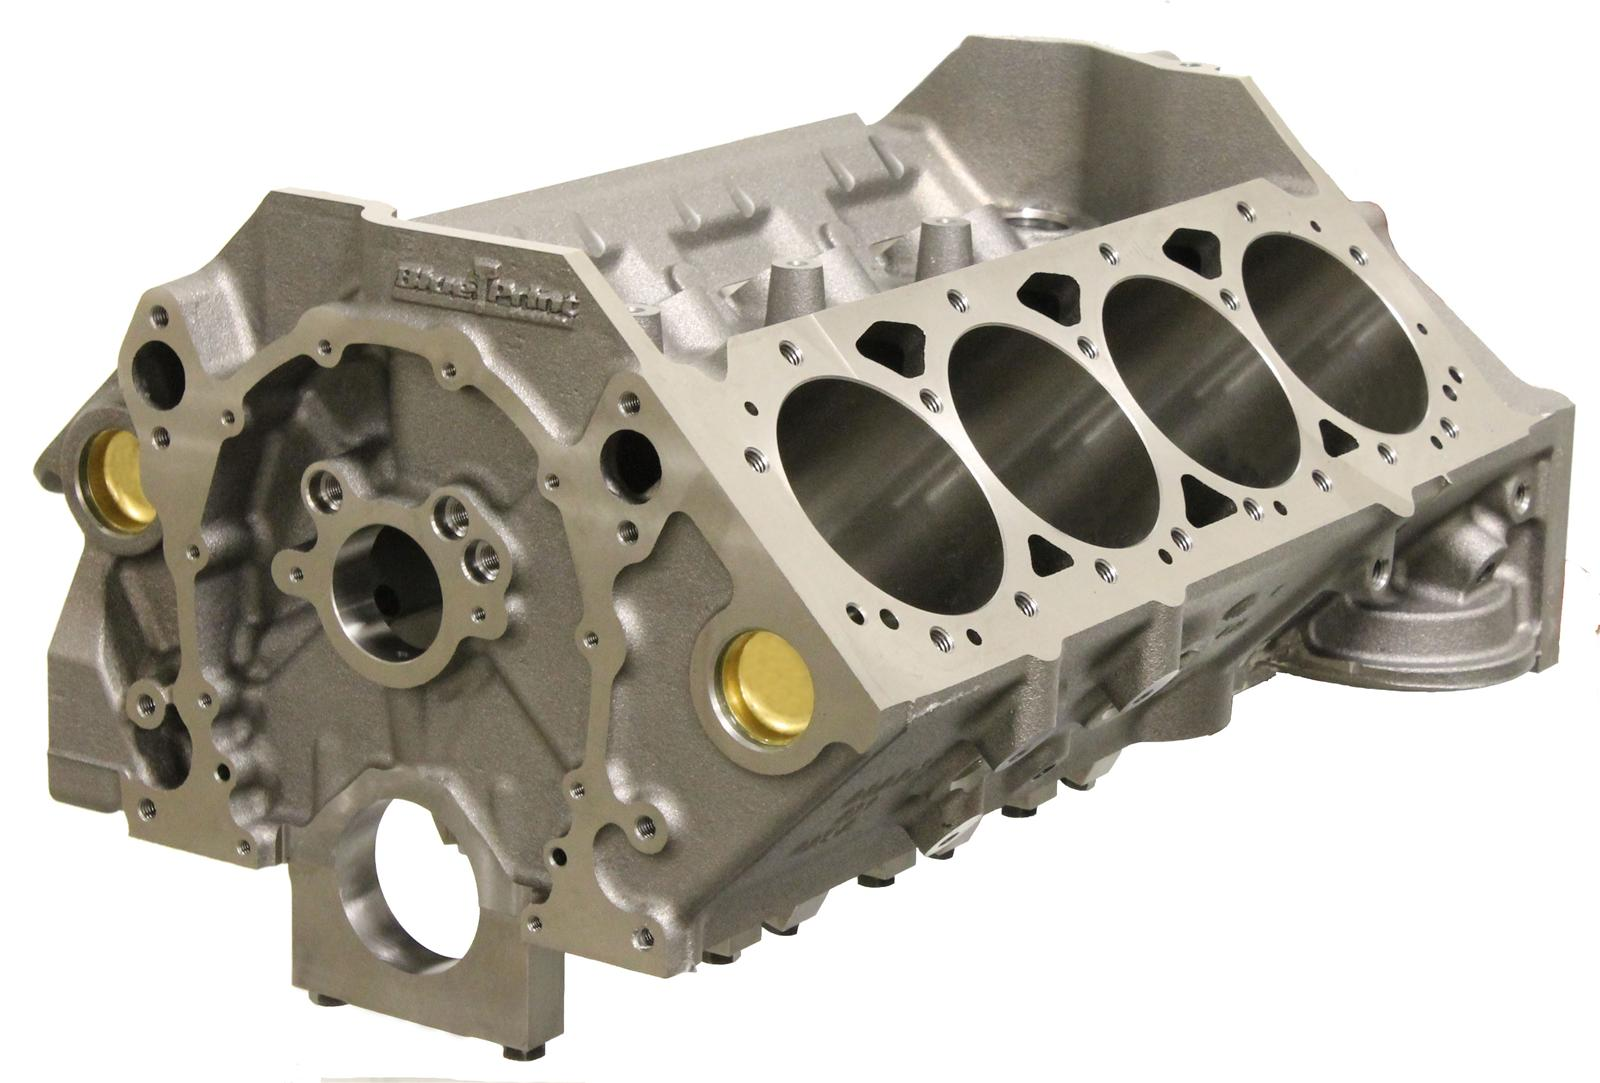 Blueprint engines chevrolet 350400 engine blocks bpsb4125200s blueprint engines chevrolet 350400 engine blocks bpsb4125200s free shipping on orders over 99 at summit racing malvernweather Gallery